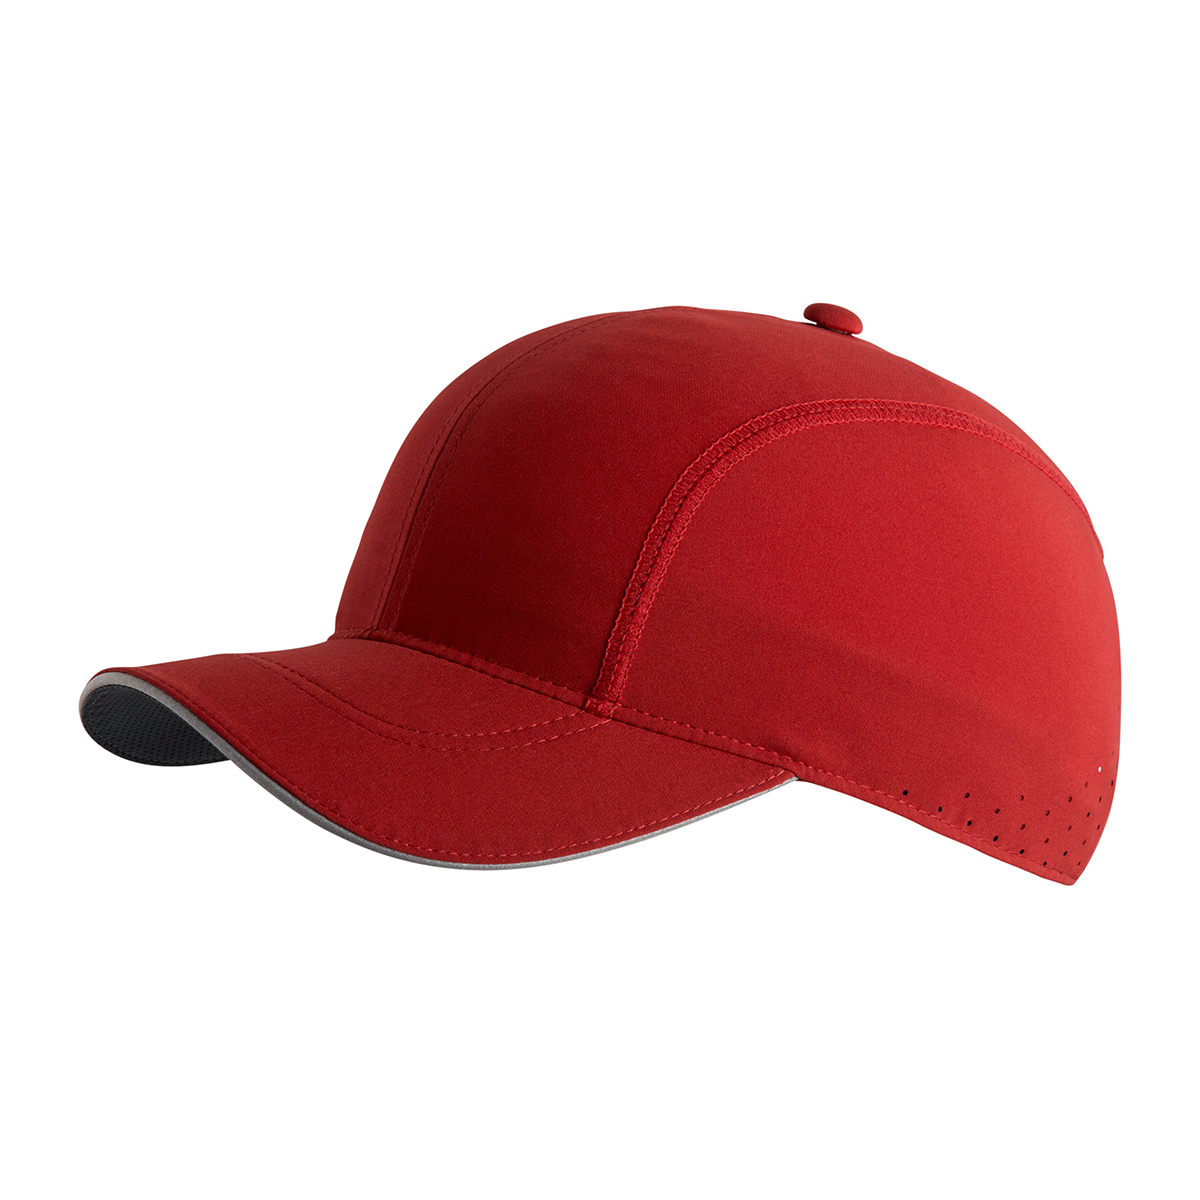 Brooks Chaser Hat - Color: Beet - Size: One Size, Beet, large, image 1